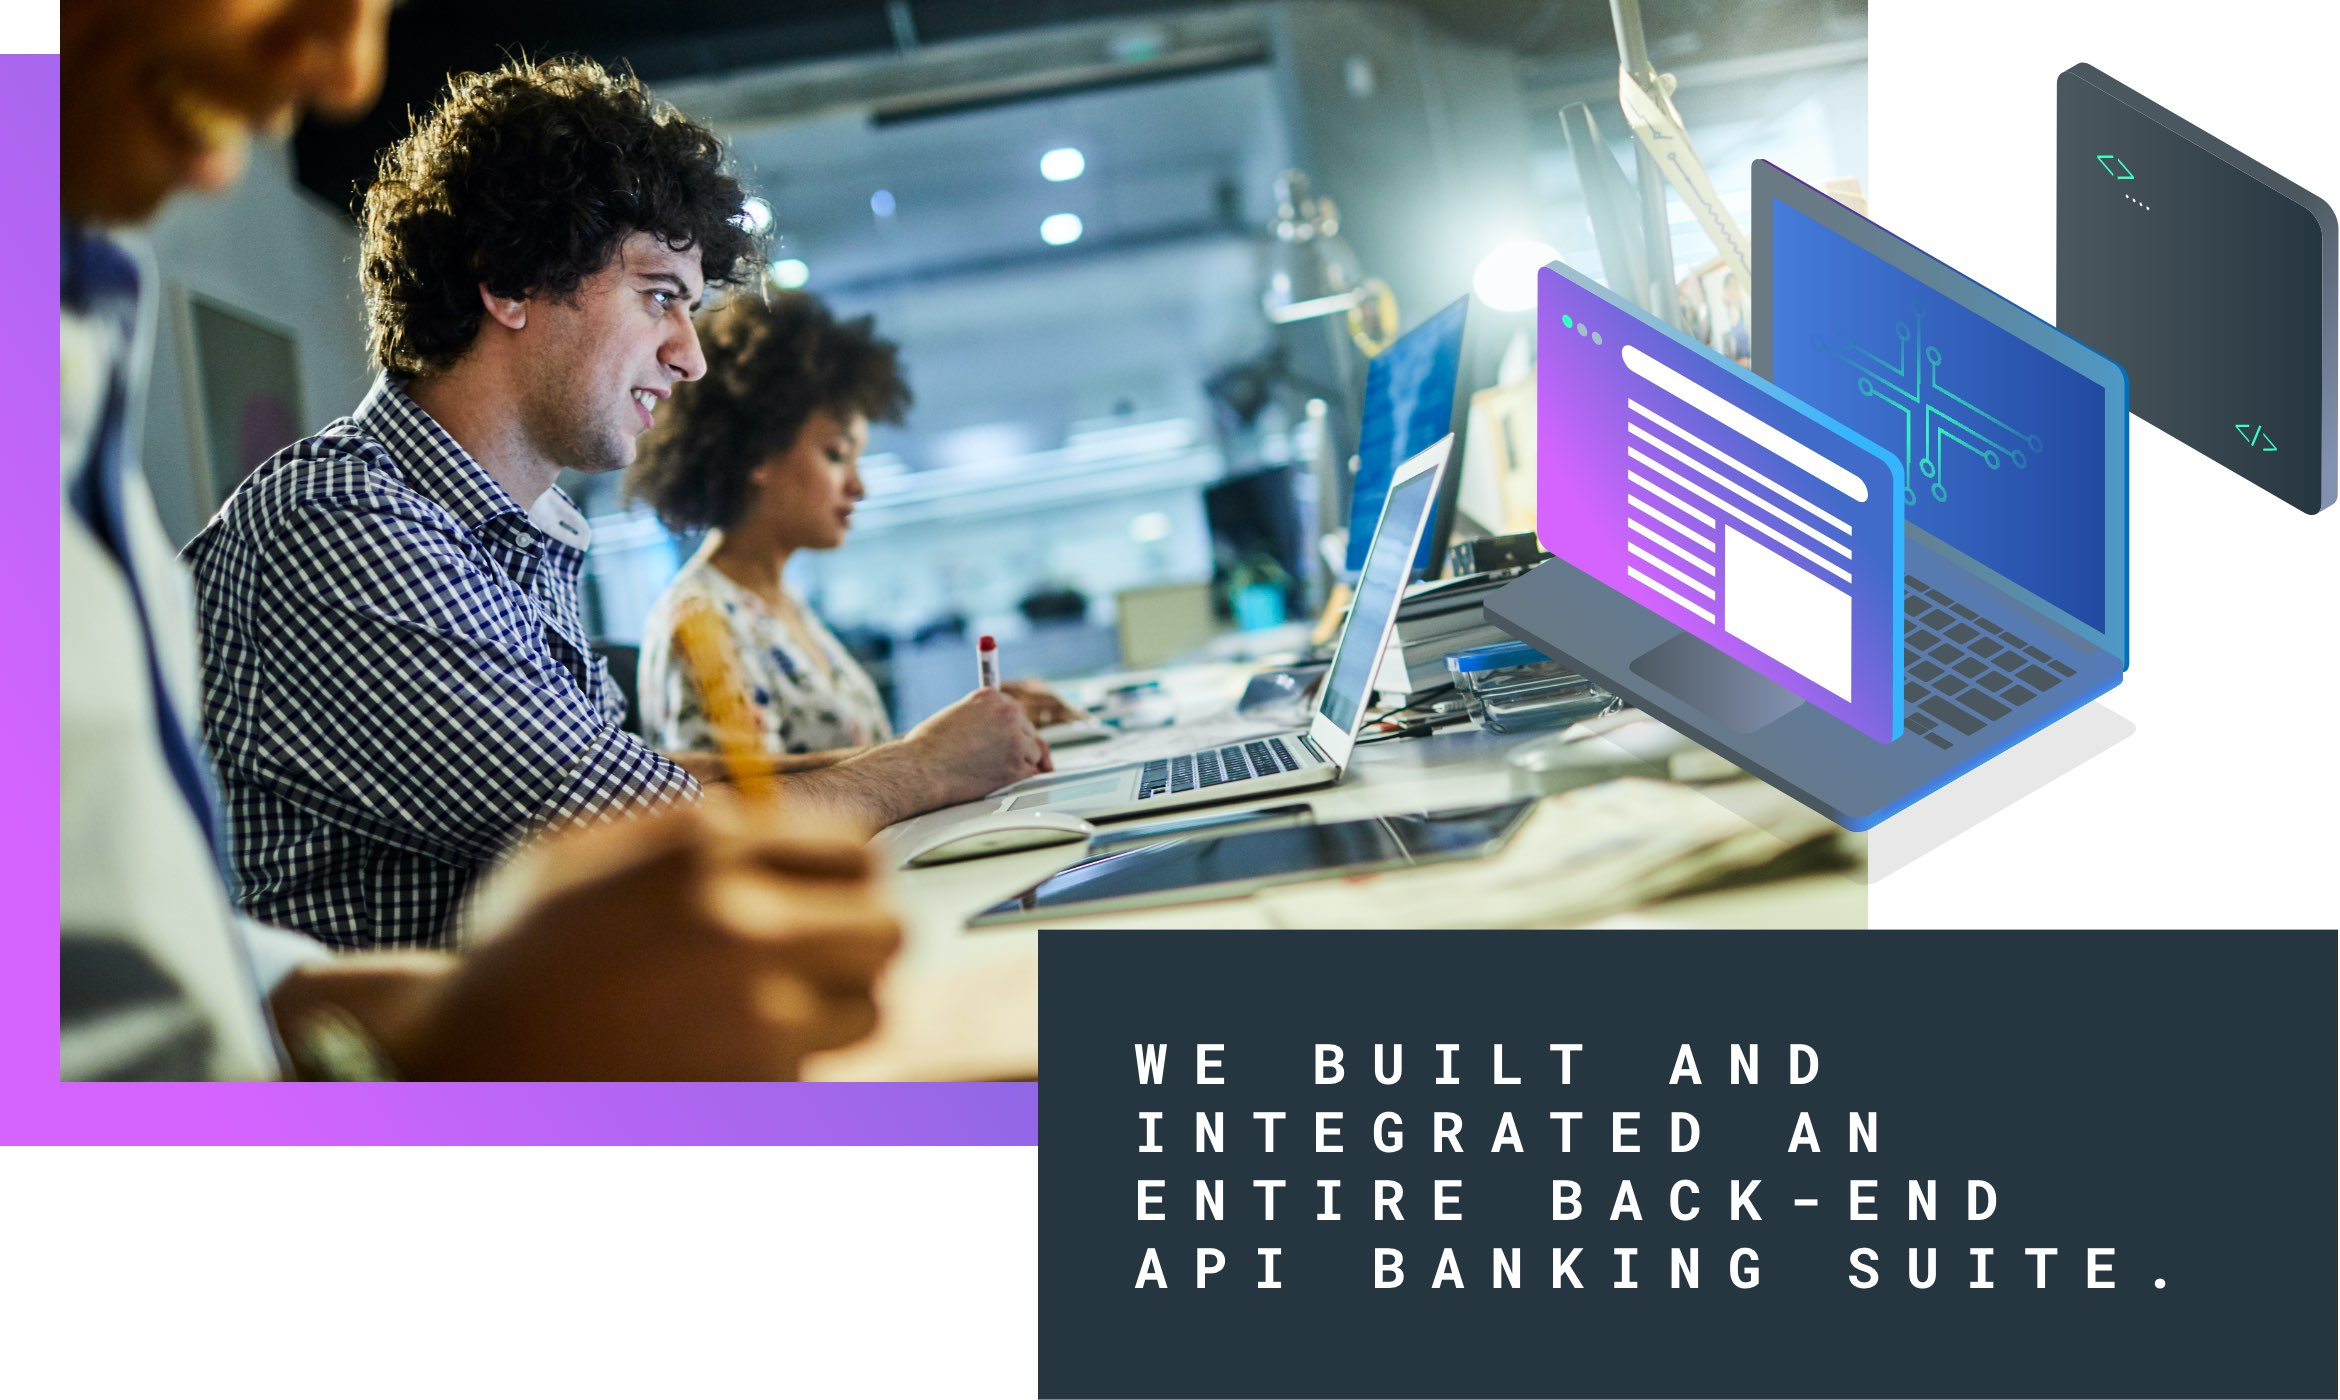 API banking suite build